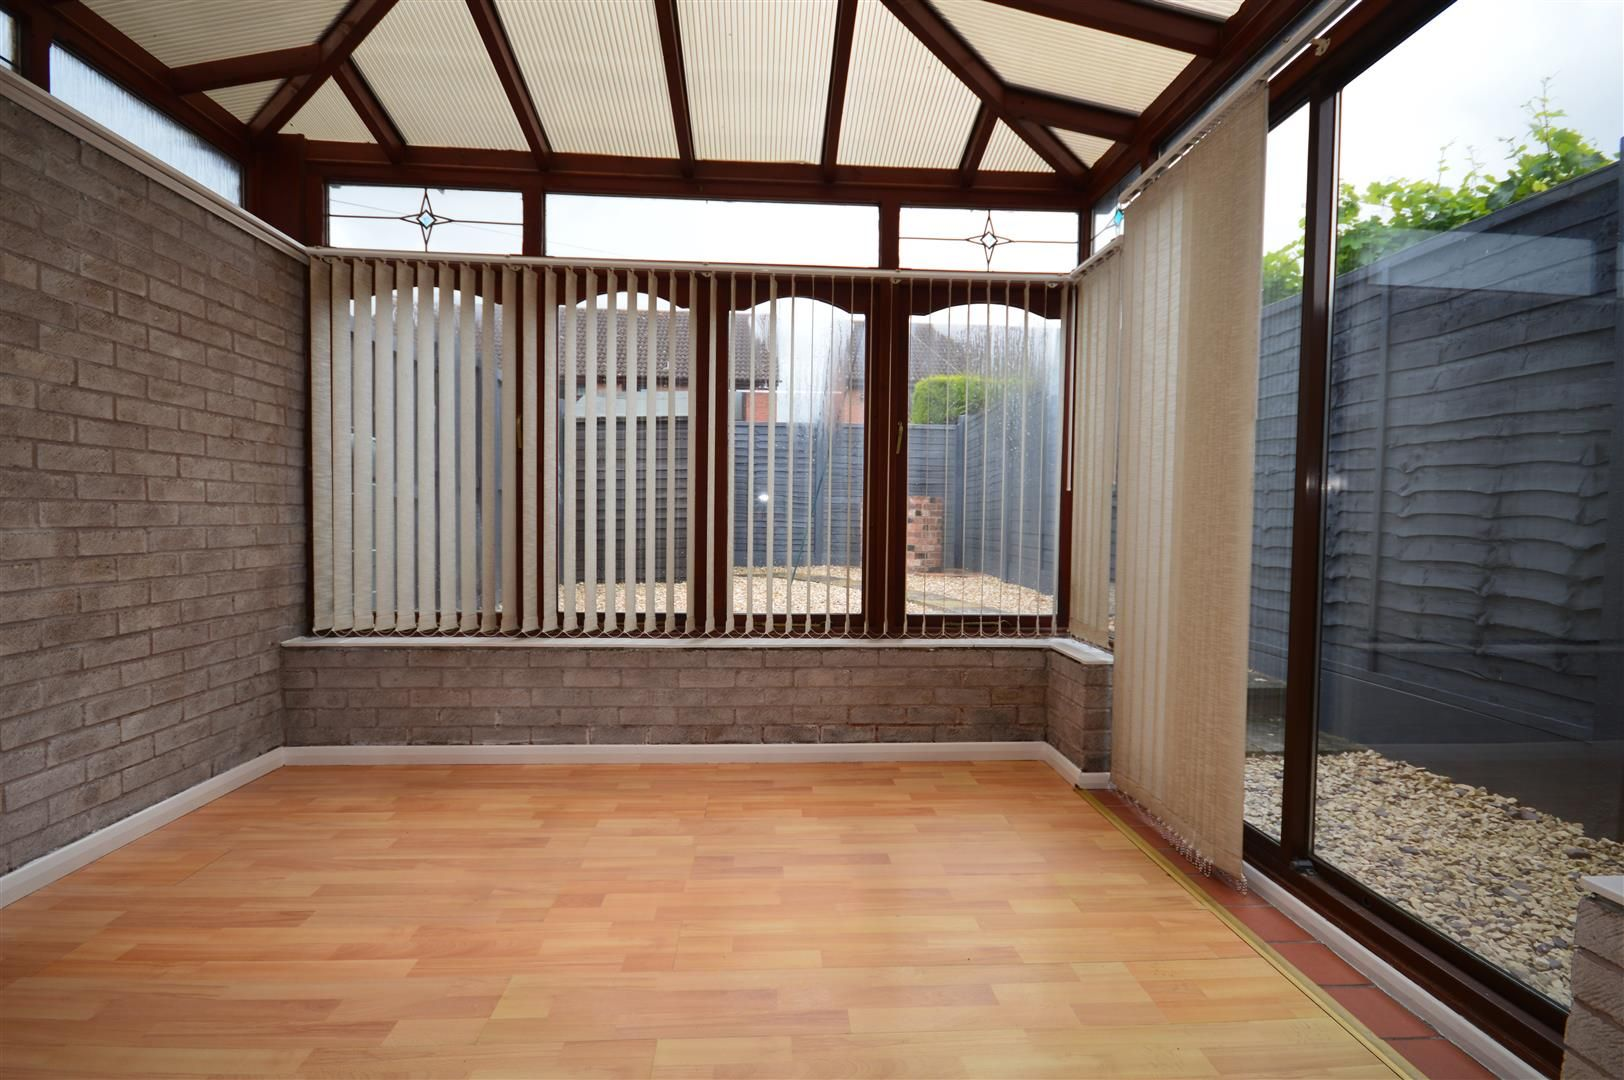 2 bed end-of-terrace for sale in Belmont 5